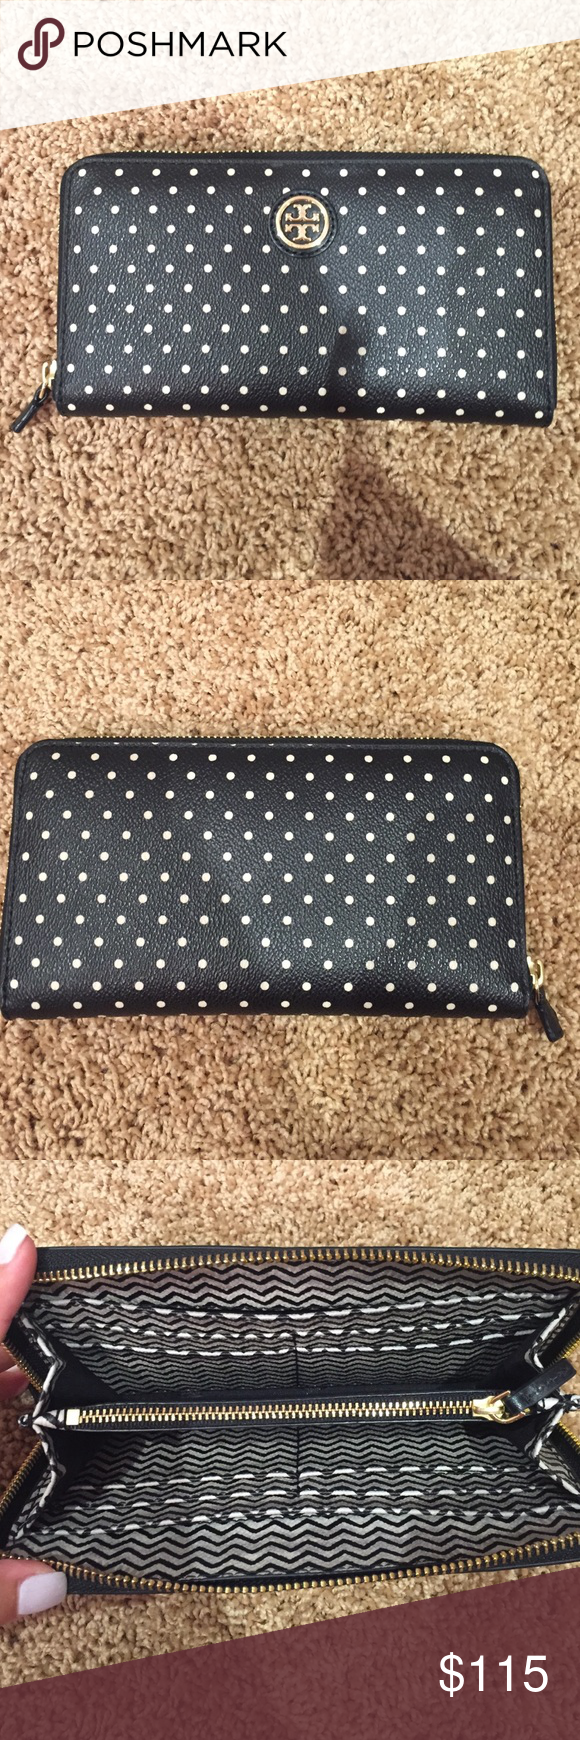 """Tory Burch """"Kerrington"""" polka dot wallet Tory Burch """"Kerrington"""" wallet. Black with cream polka dots. Zips around. Lightly used with no signs of wear! Tory Burch Bags Wallets"""